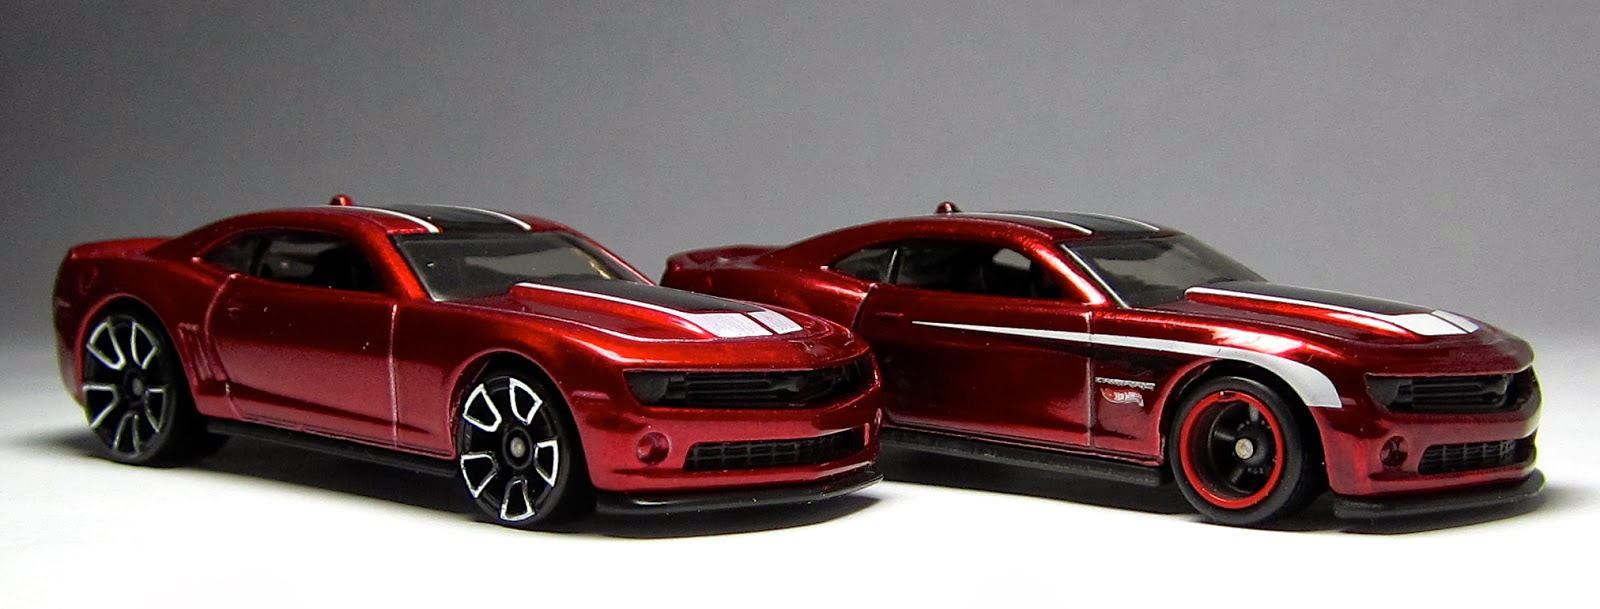 first look 2014 hot wheels chevy camaro special edition basic super treasure hunt. Black Bedroom Furniture Sets. Home Design Ideas